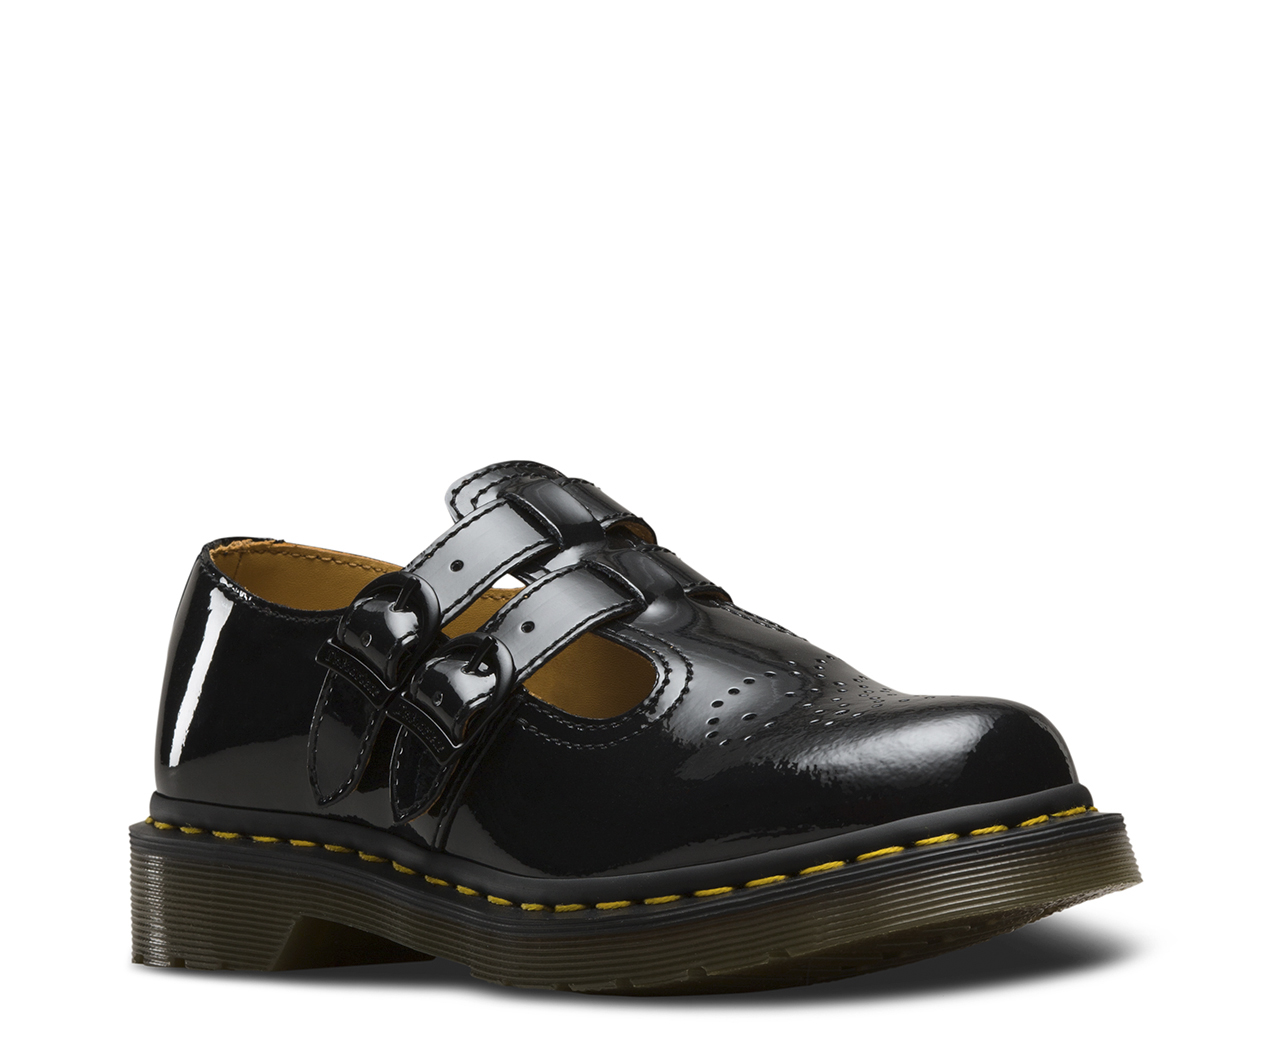 8065 Patent by Dr. Martens